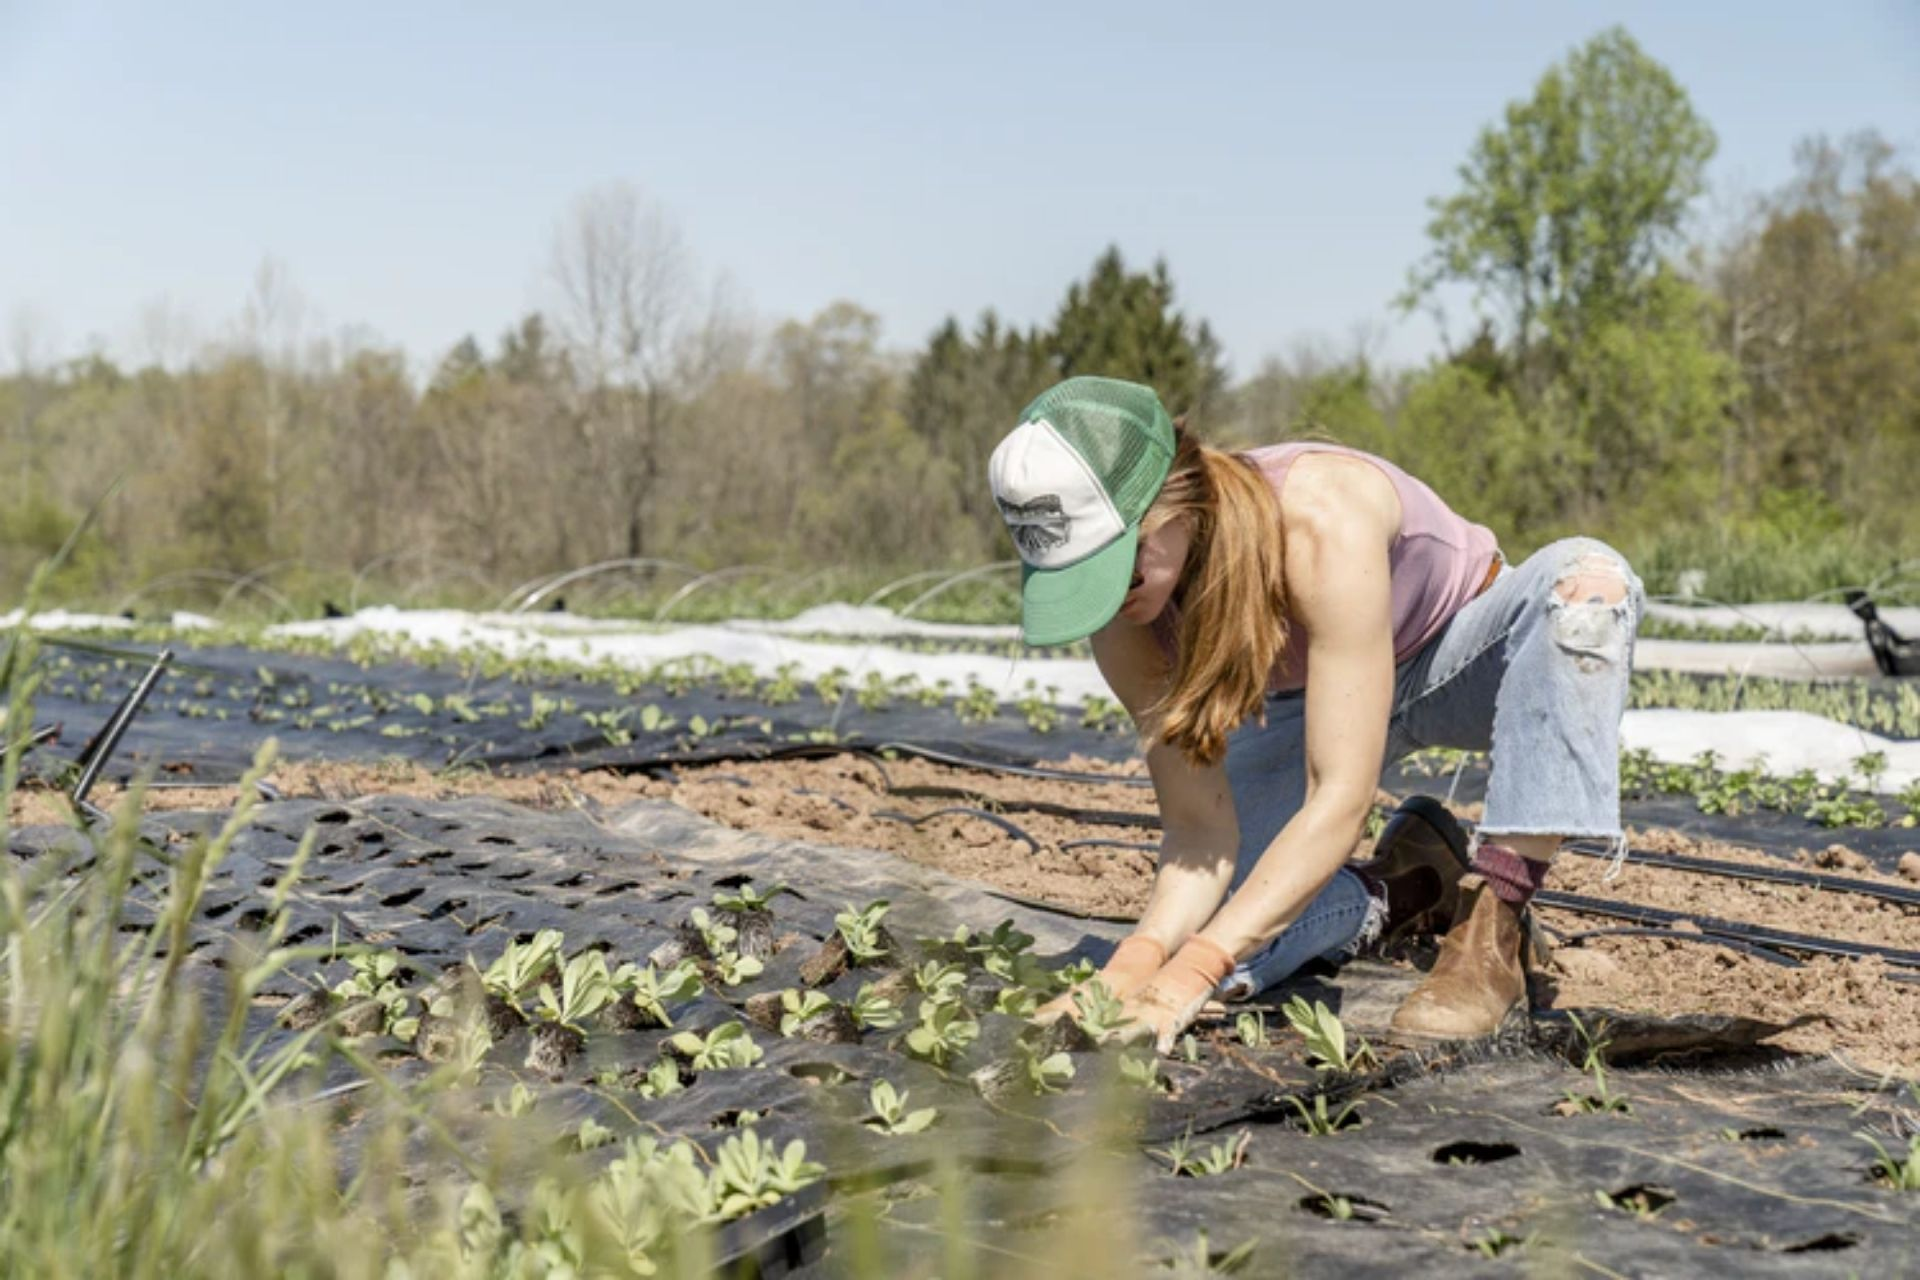 5 women in agribusiness